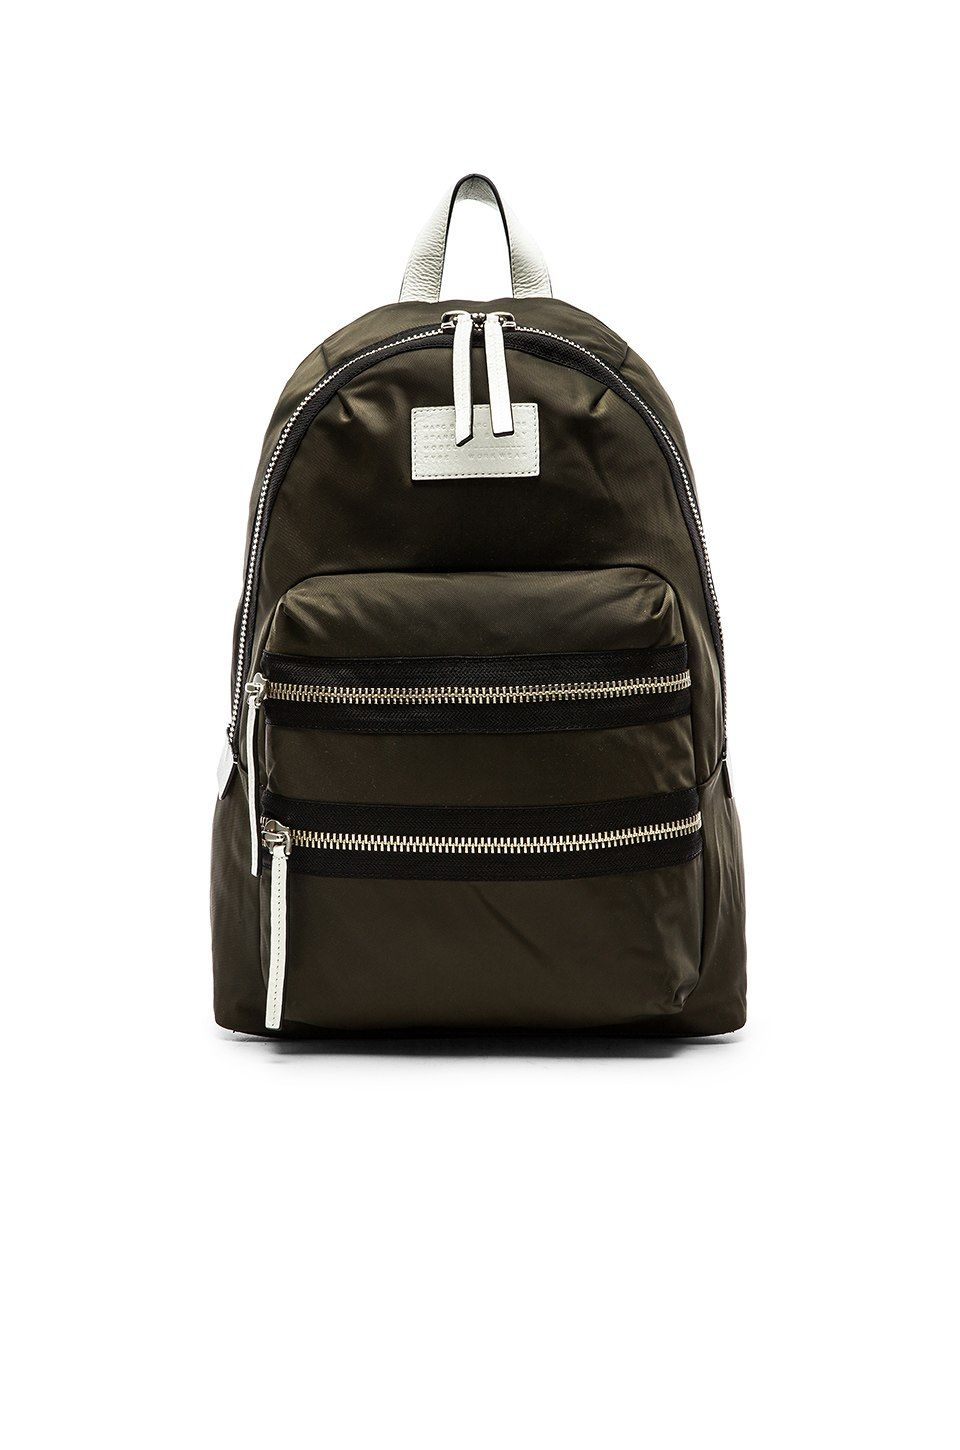 93901a42c171 Marc by Marc Jacobs Domo Arigato Packrat Backpack in Spanish Moss ...